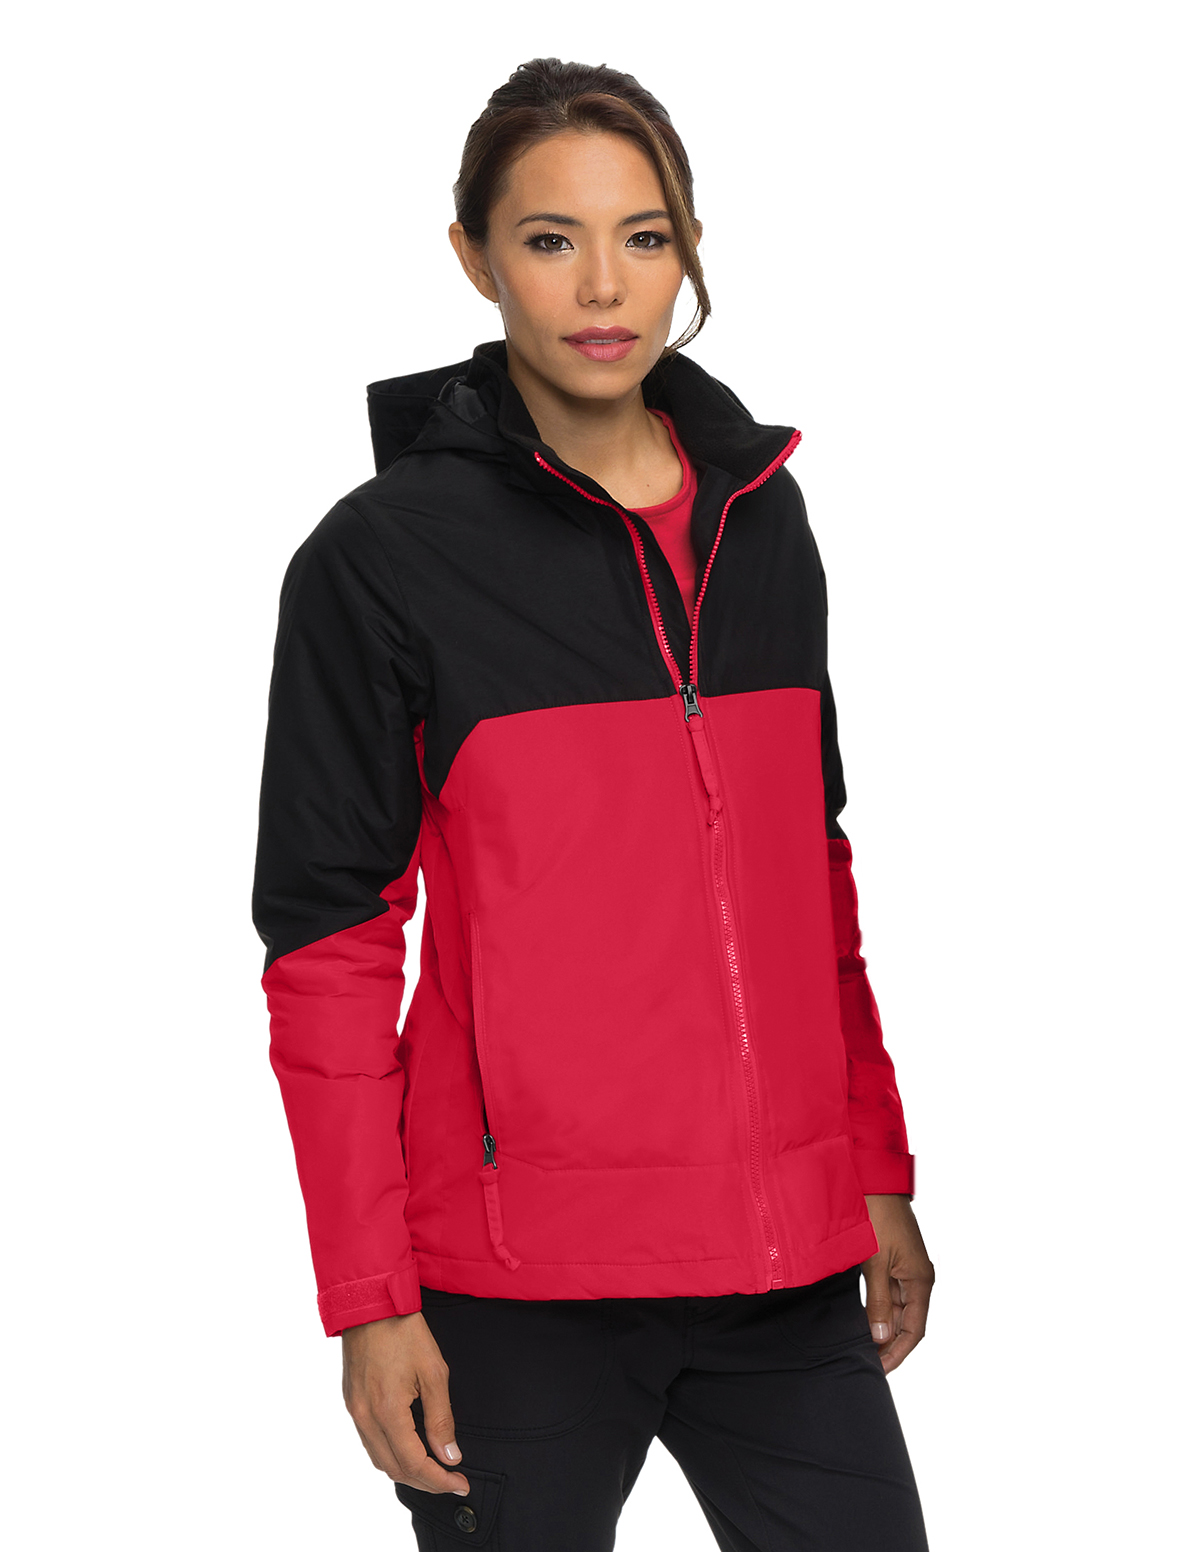 Tri-Mountain JL8920 - Lady Edge Women's Heavyweight Jacket